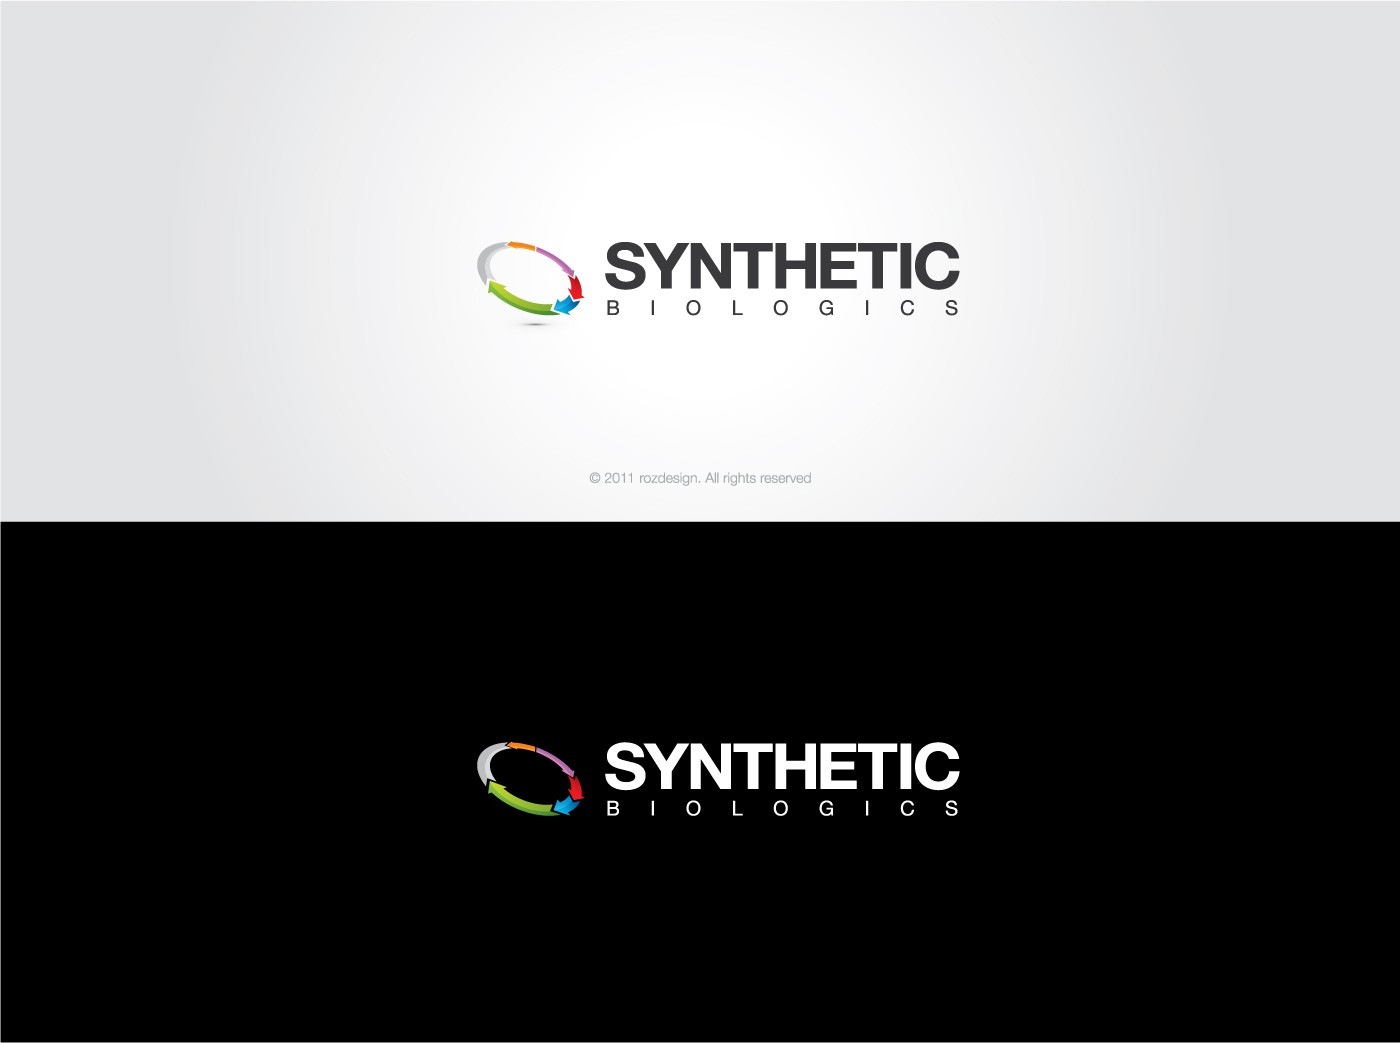 Help Synthetic Biologics, Inc. with a logo